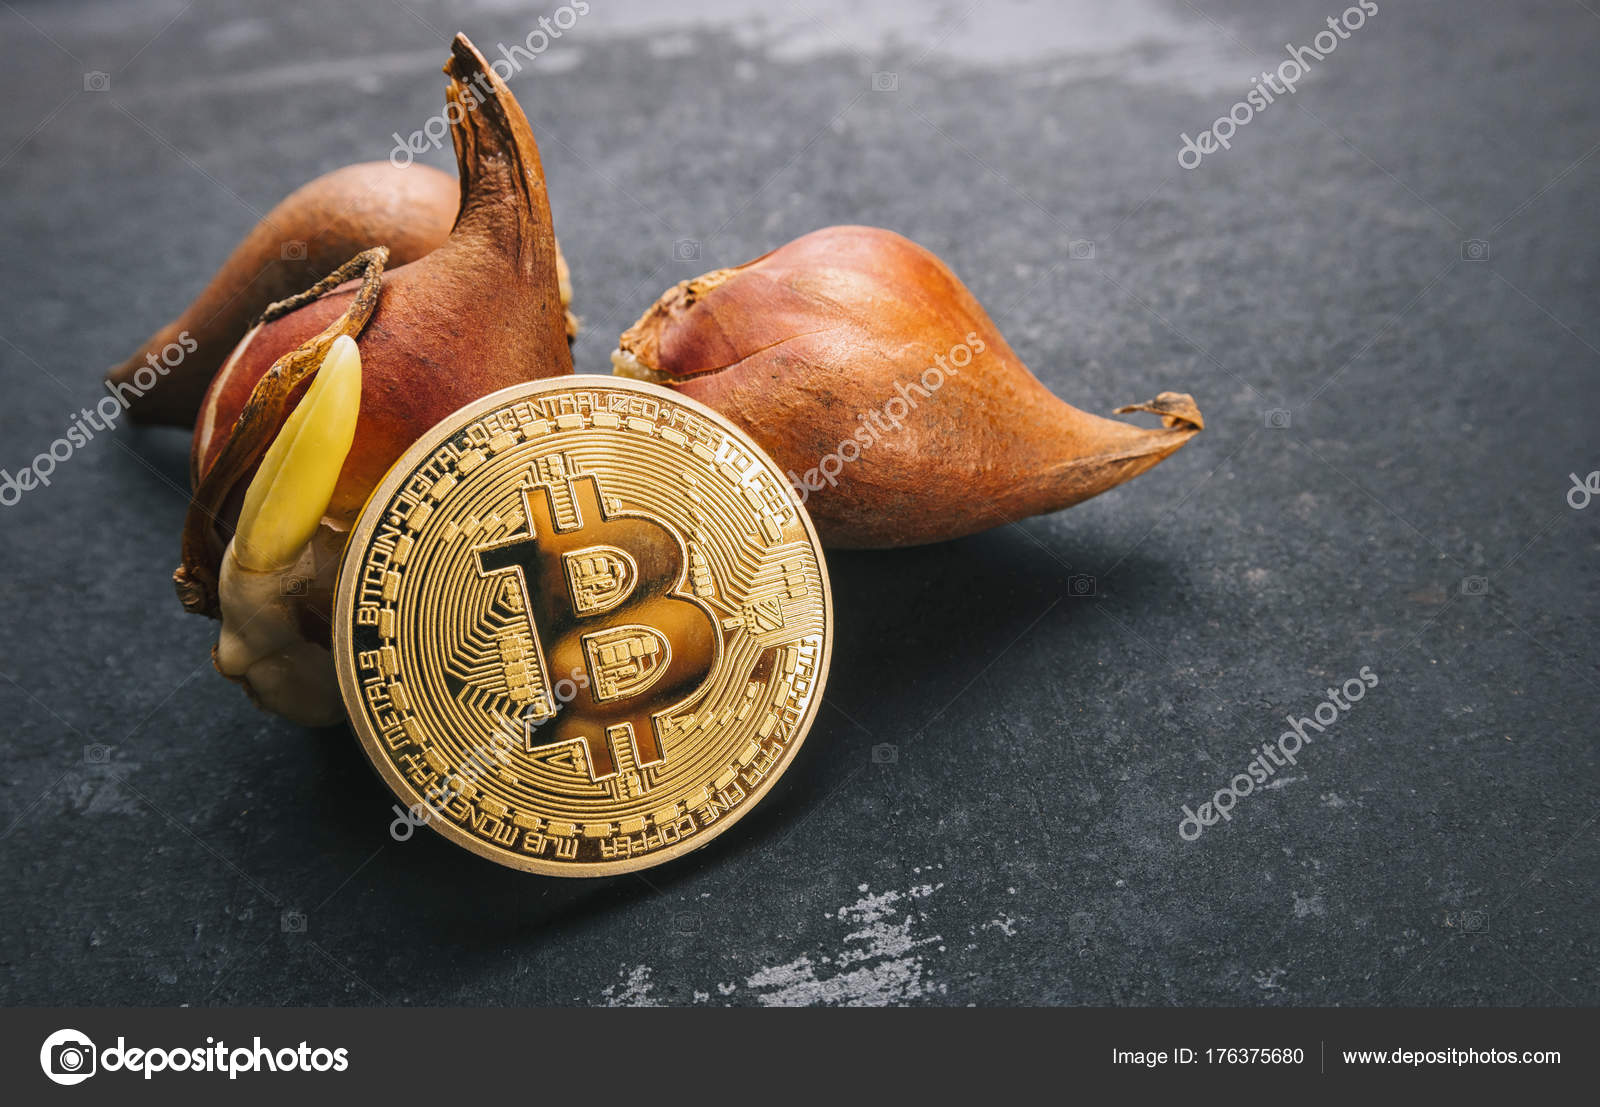 jj coin cryptocurrency